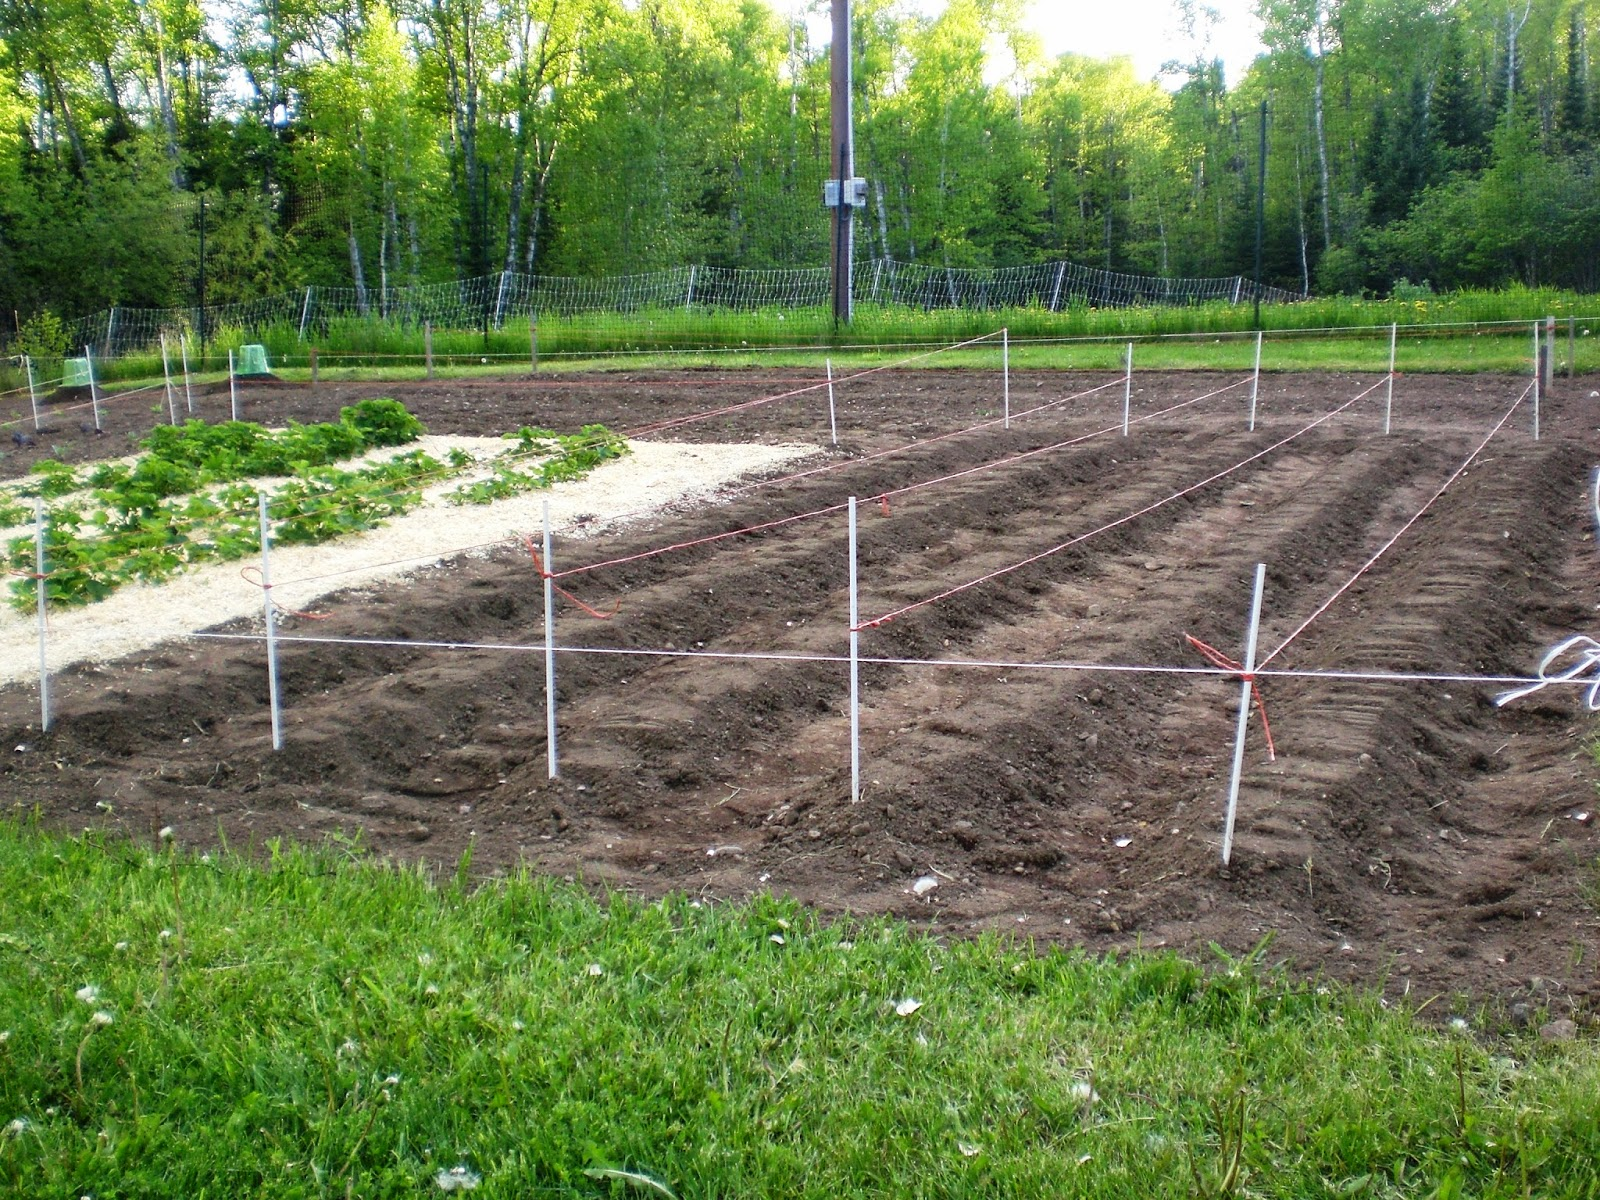 a home grown journal: more planting, getting close to done